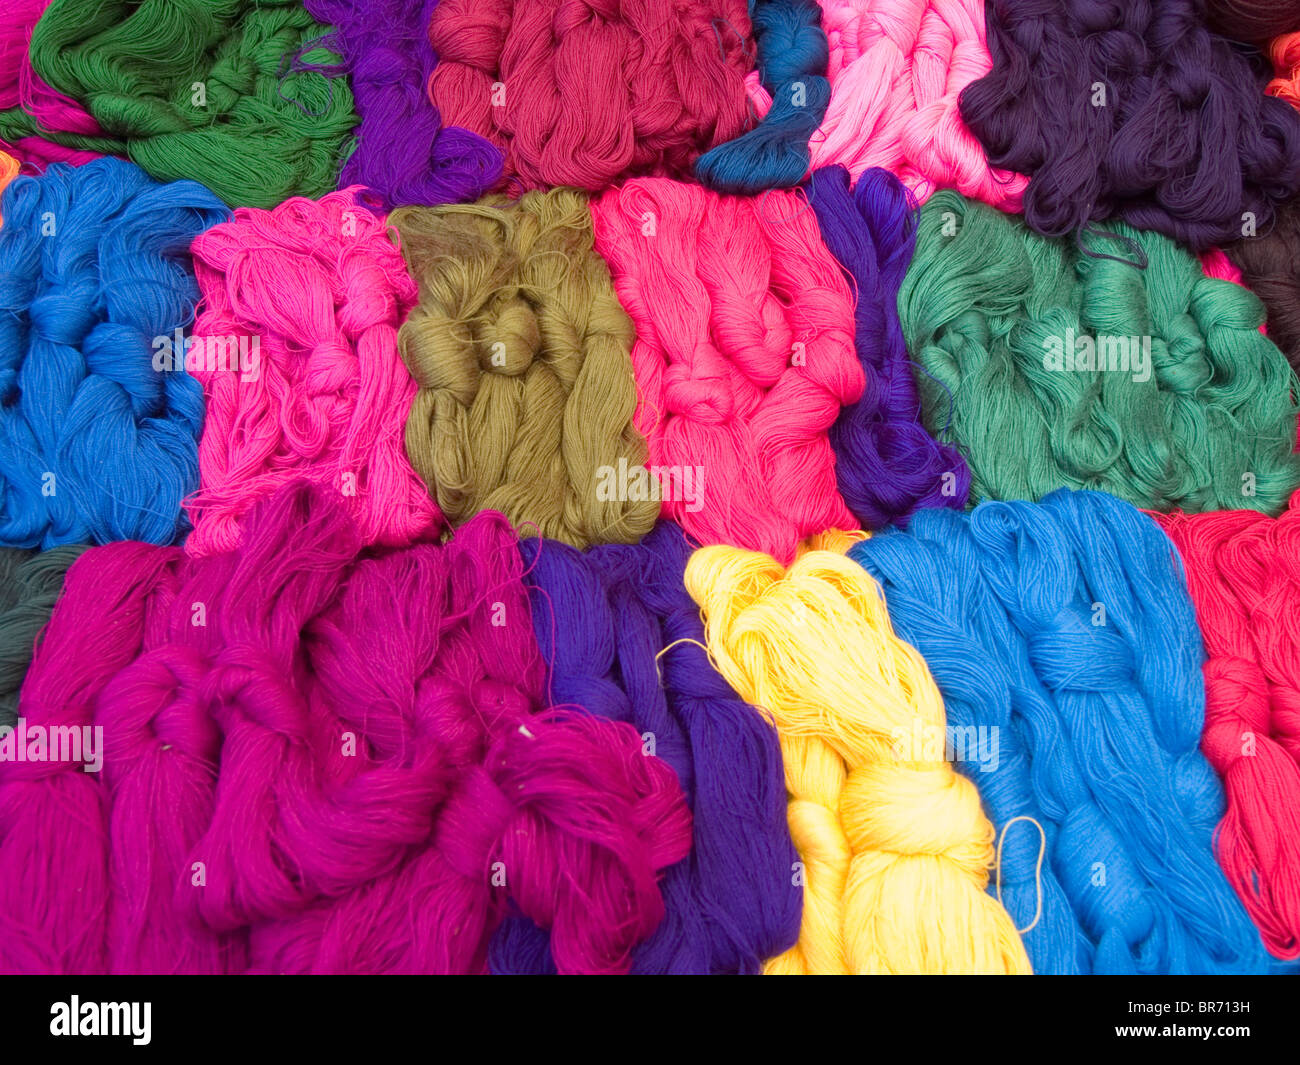 Colorful yarn for sale in the main market in Solola Guatemala. - Stock Image